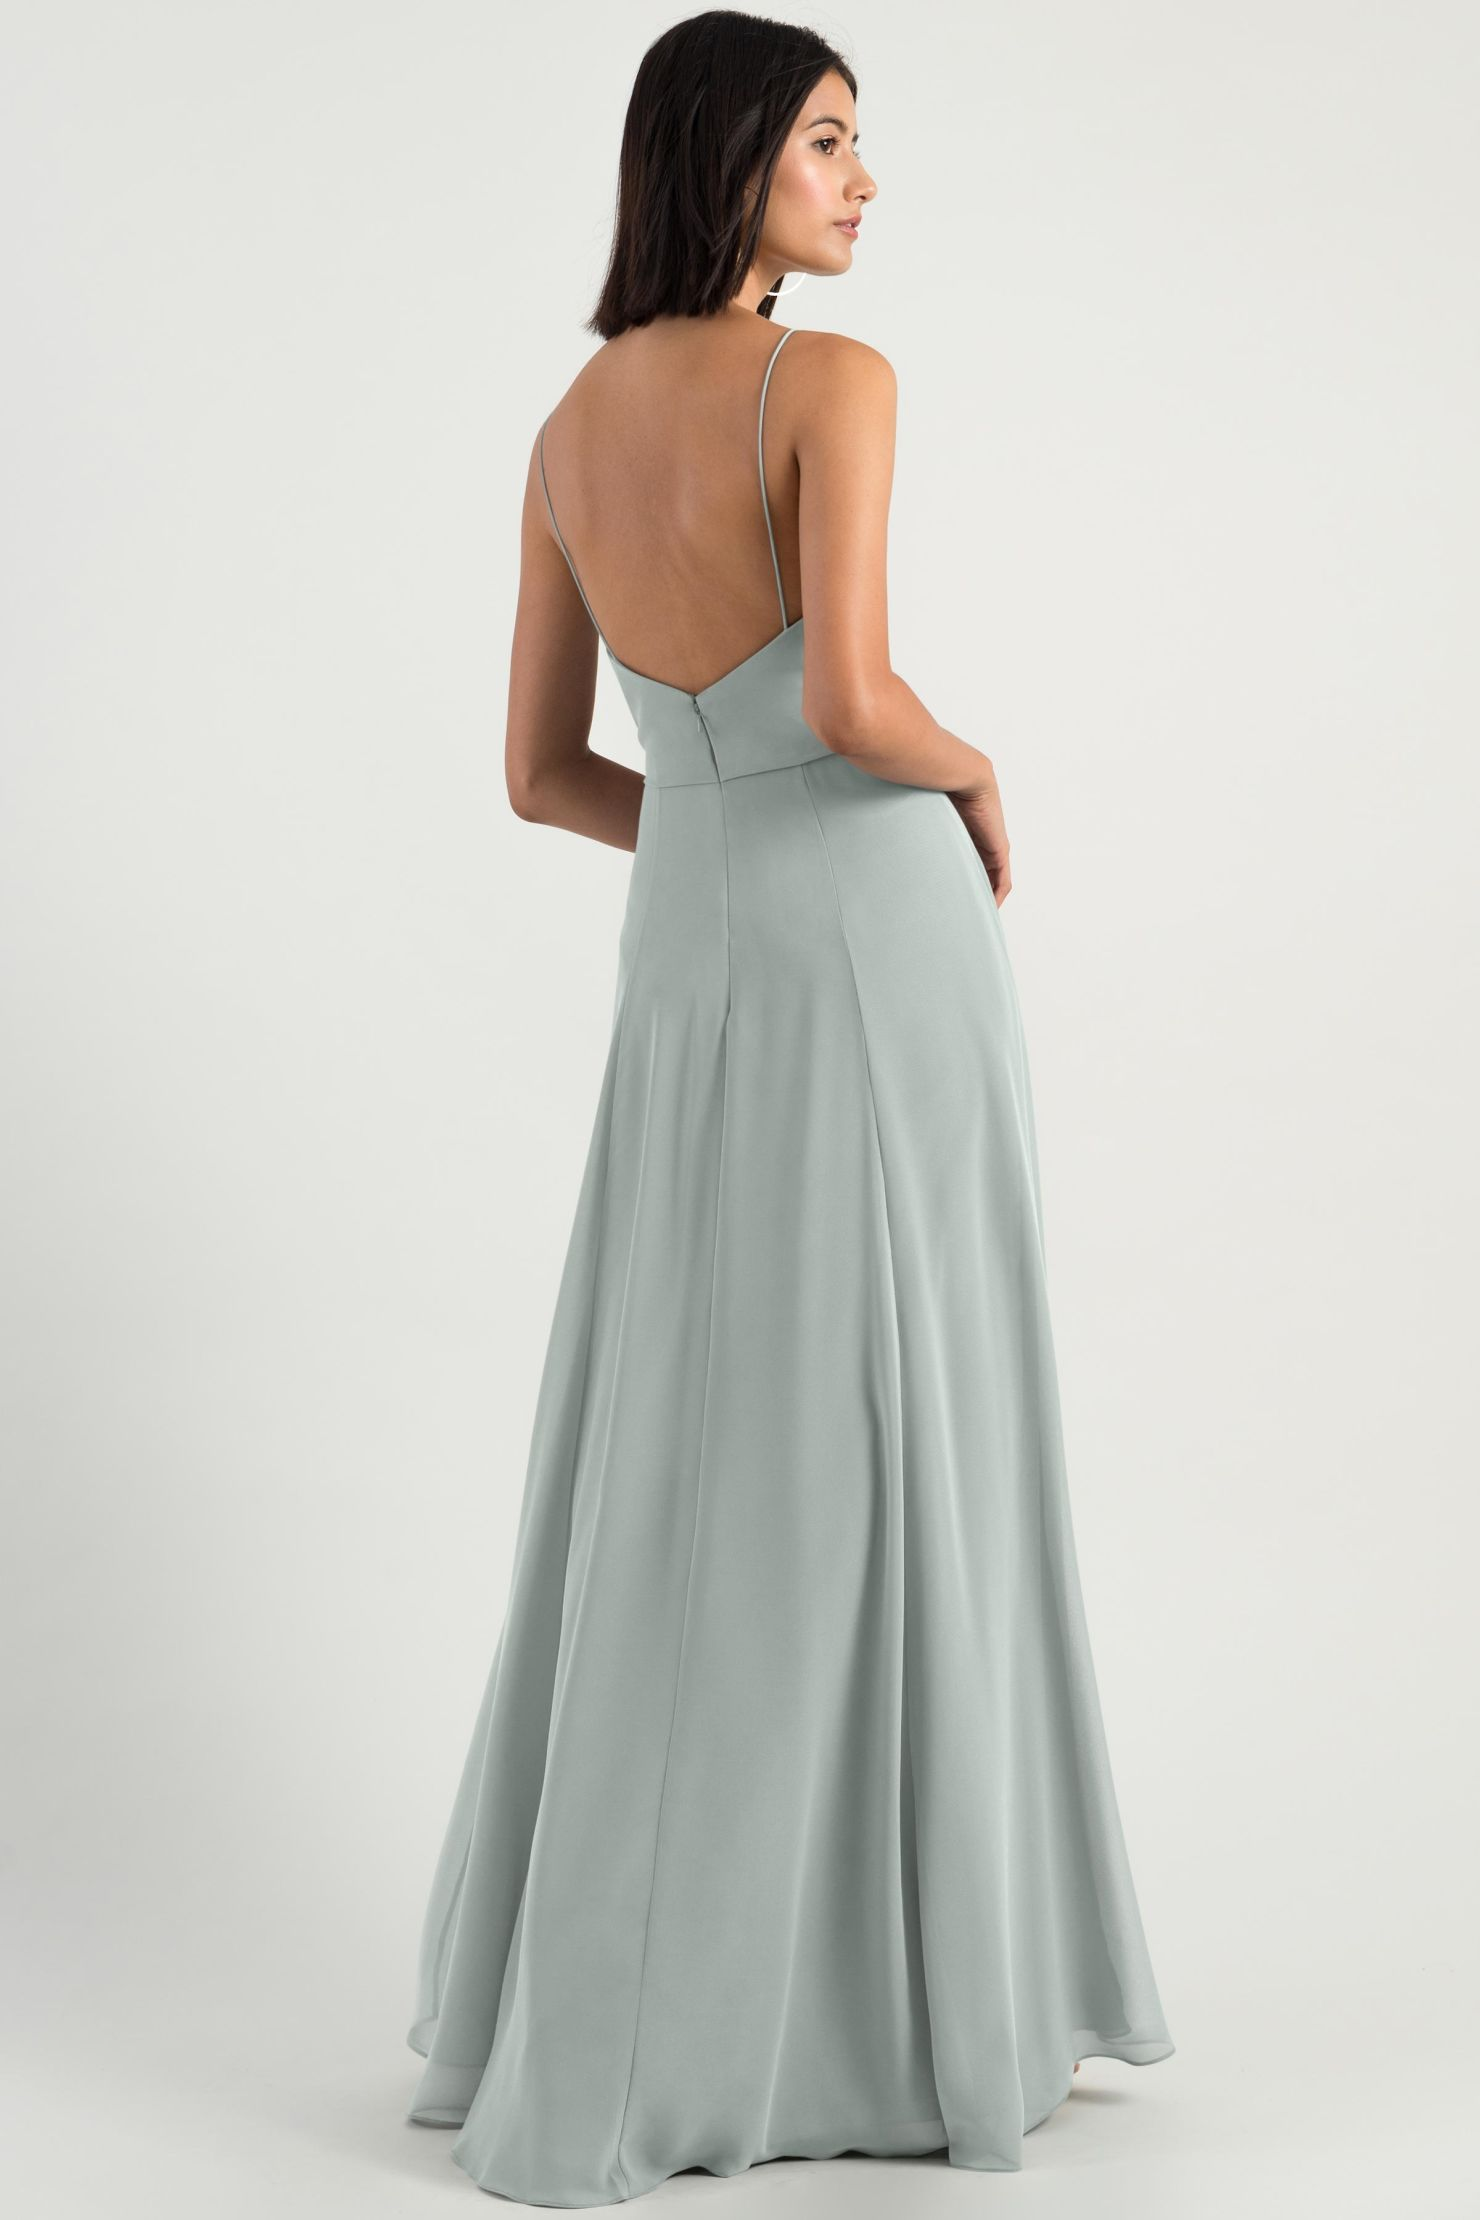 Amara Bridesmaids Dress by Jenny Yoo - Morning Mist